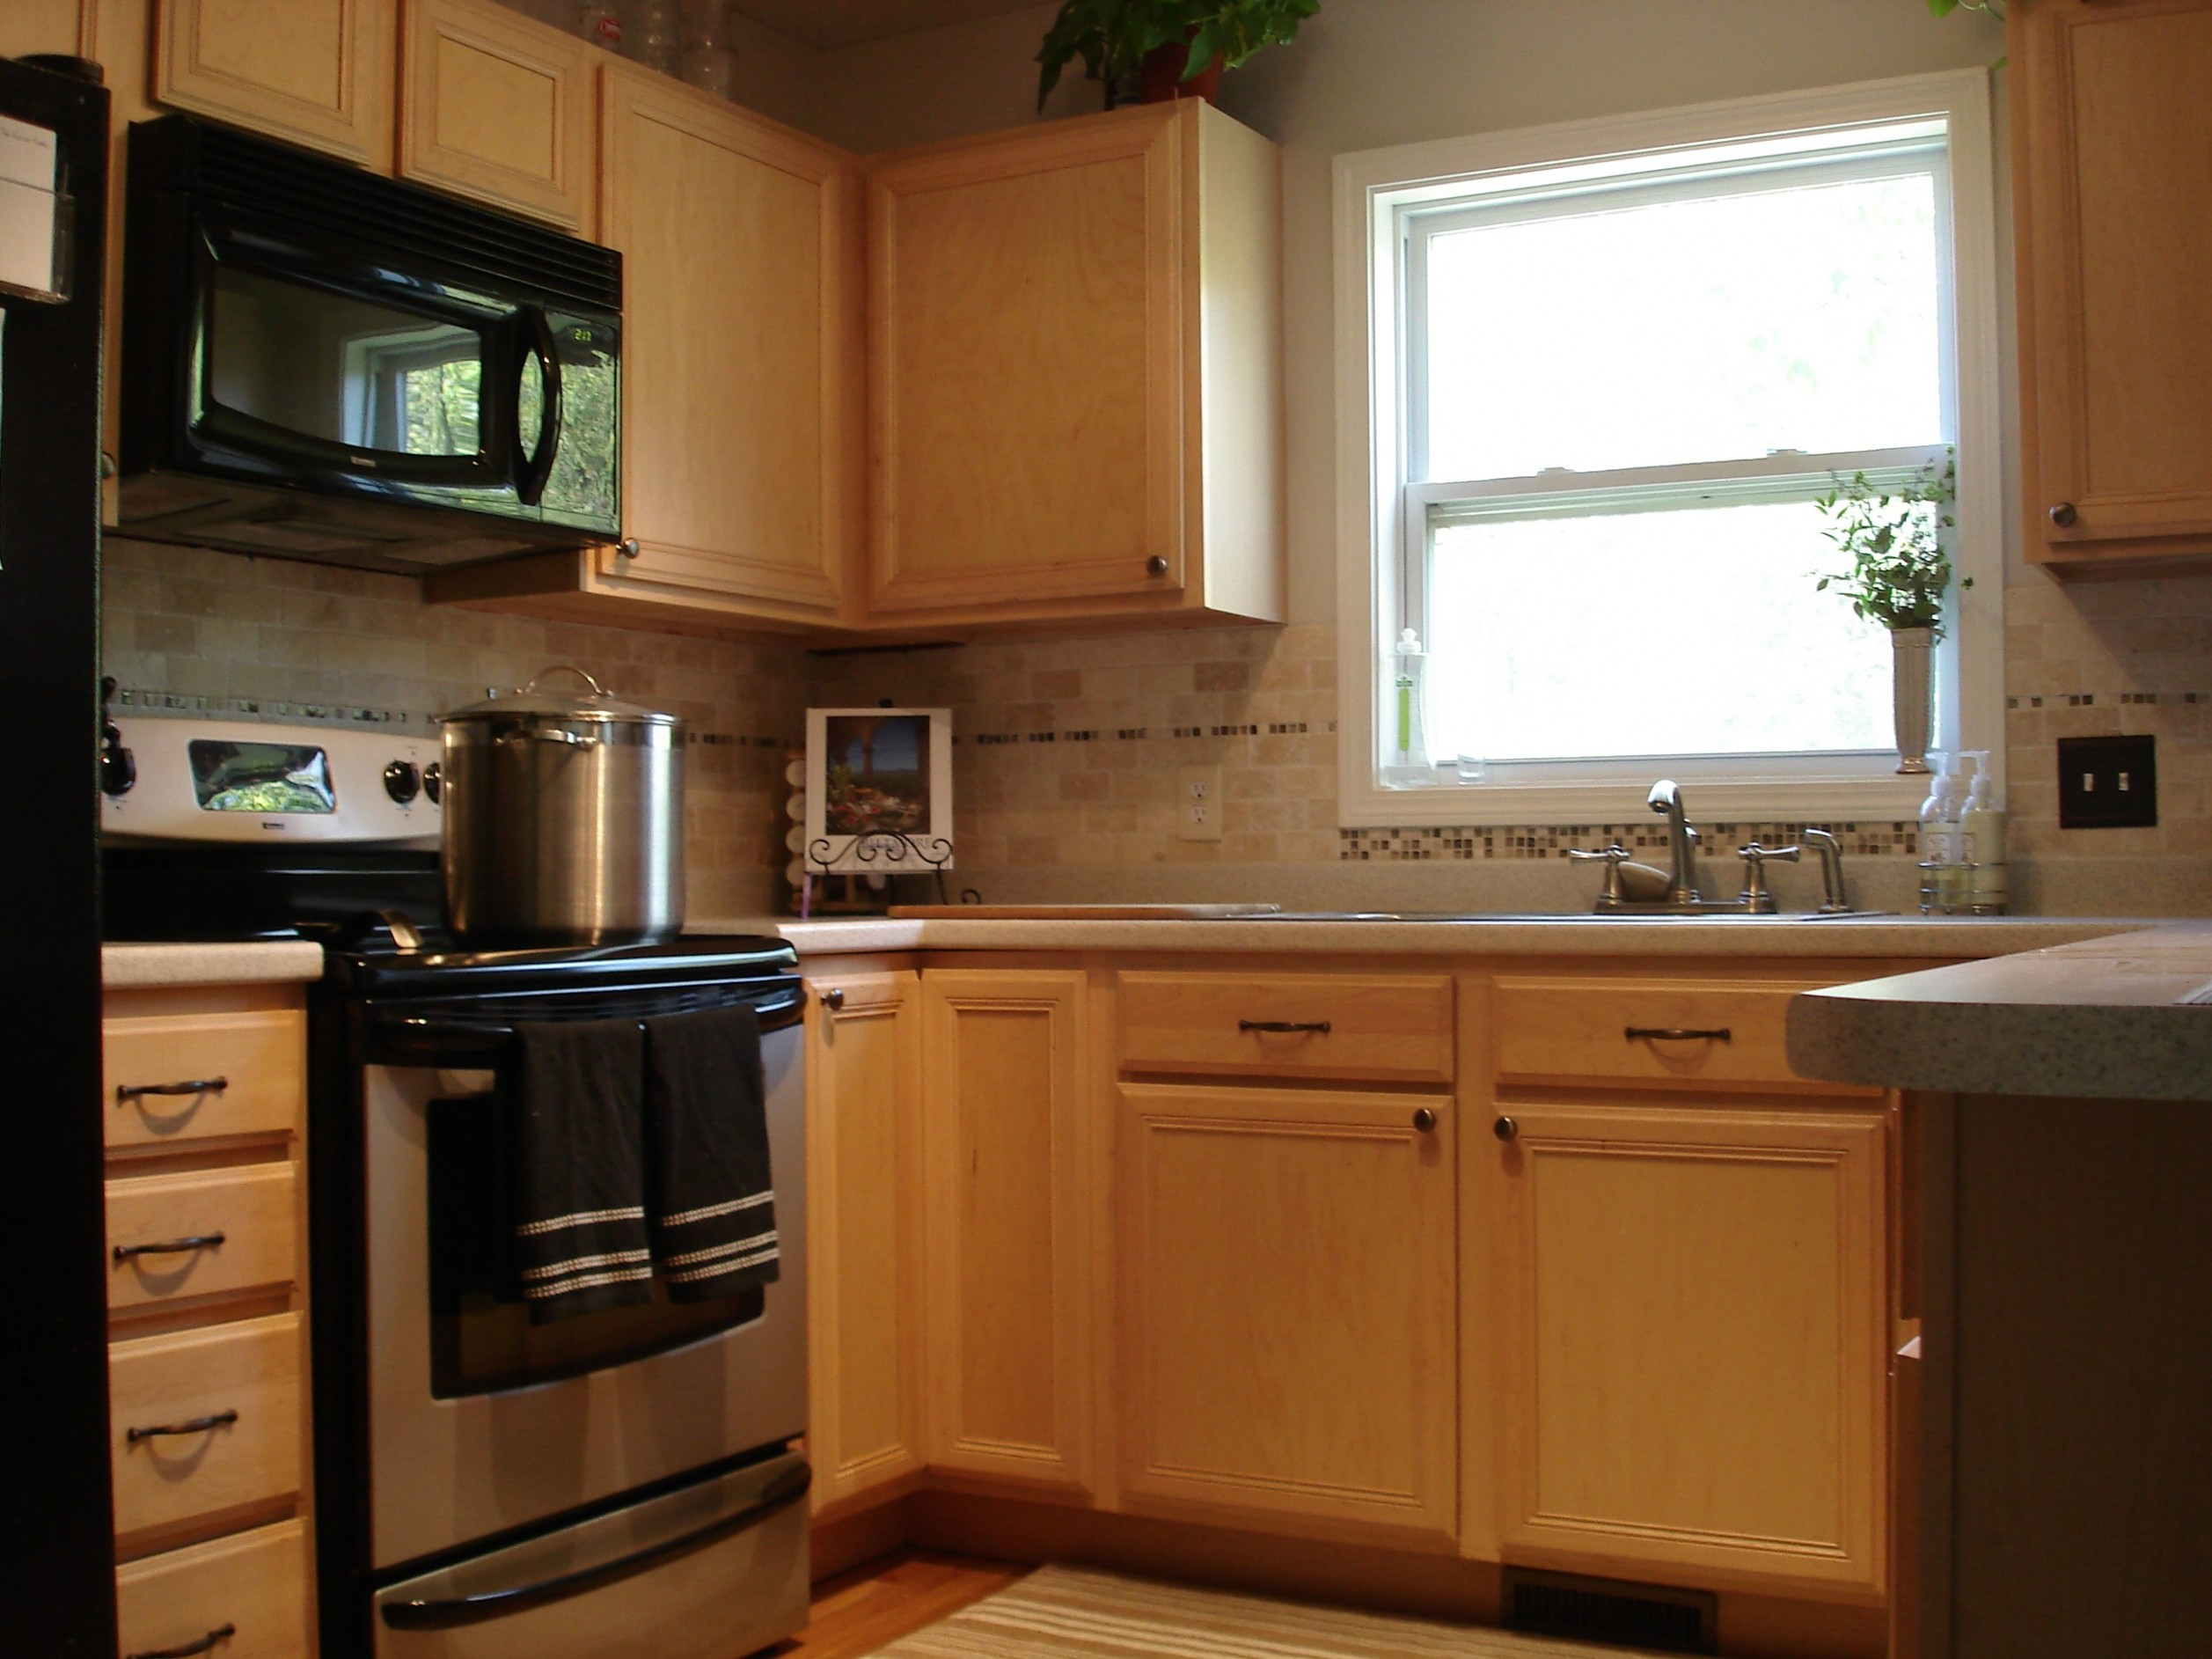 Tutorial: Painting (Fake Wood) Kitchen Cabinets - Pressed Wood Kitchen Cabinets